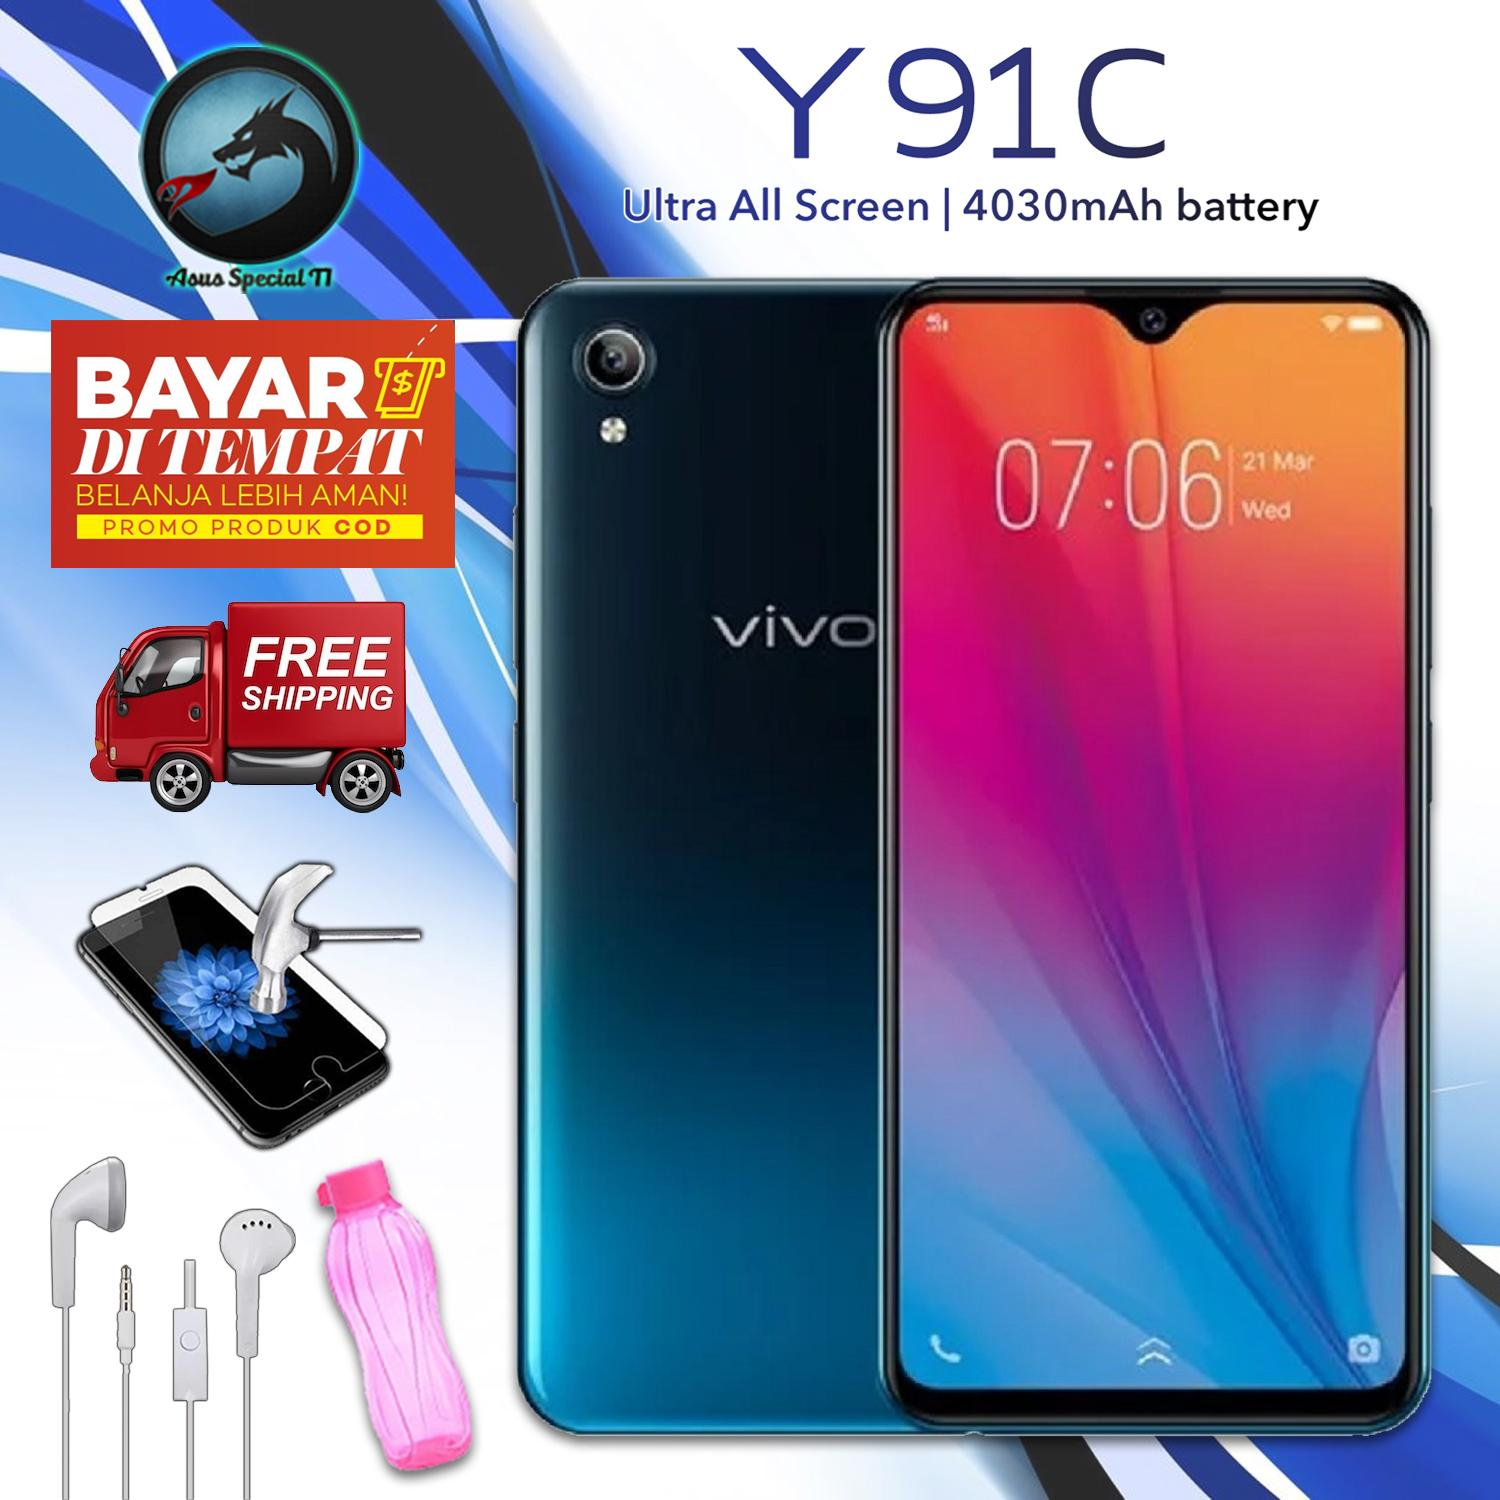 Vivo Y91C - 2G/32G 6.22inches, COD, Gratis Ongkir, Ultra All Screen, Garansi resmi + Packet Special S2